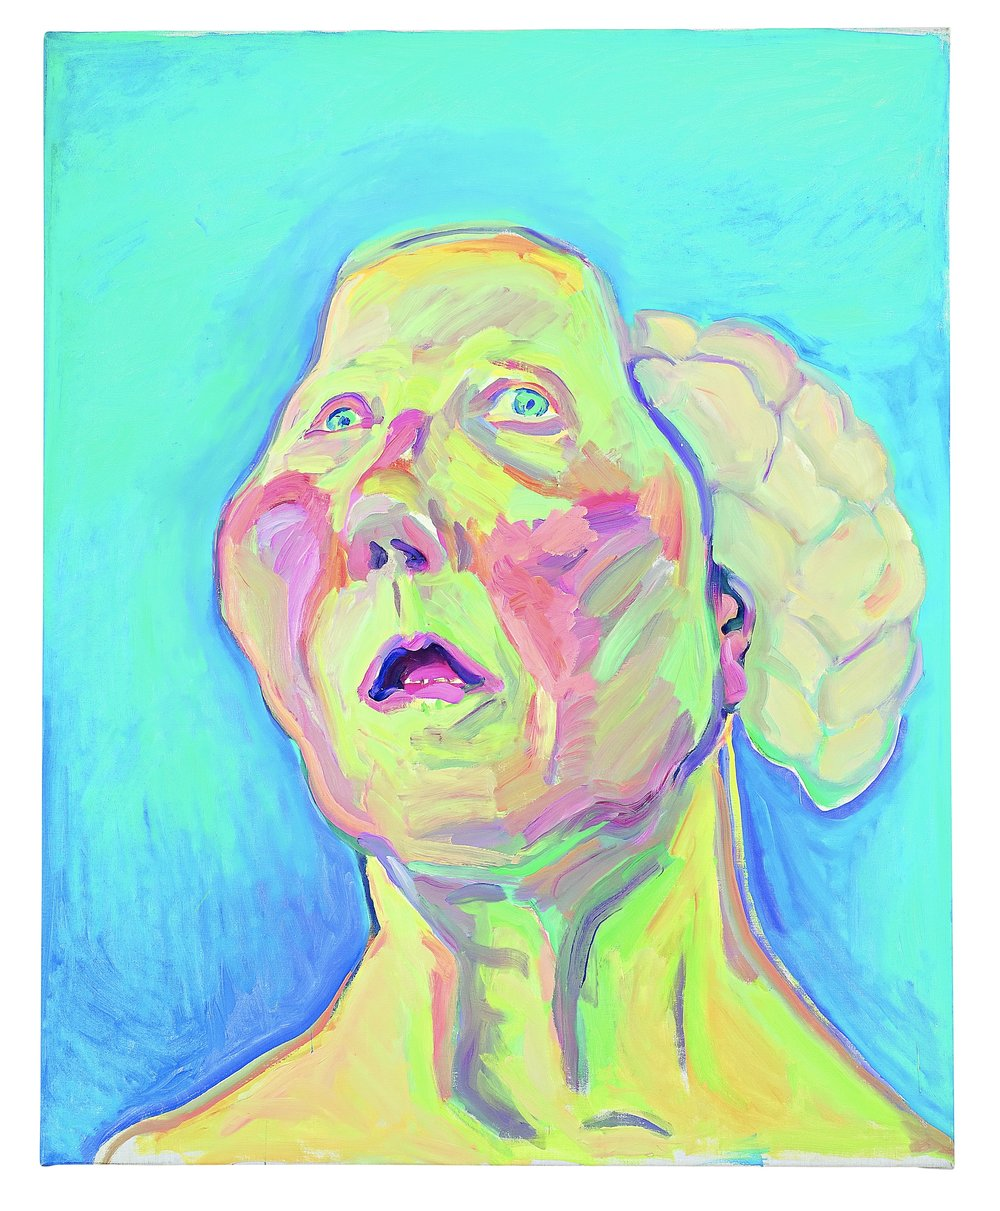 II. Lady with Brain (Dame mit Hirn), c. 1990, © Maria Lassnig Foundation